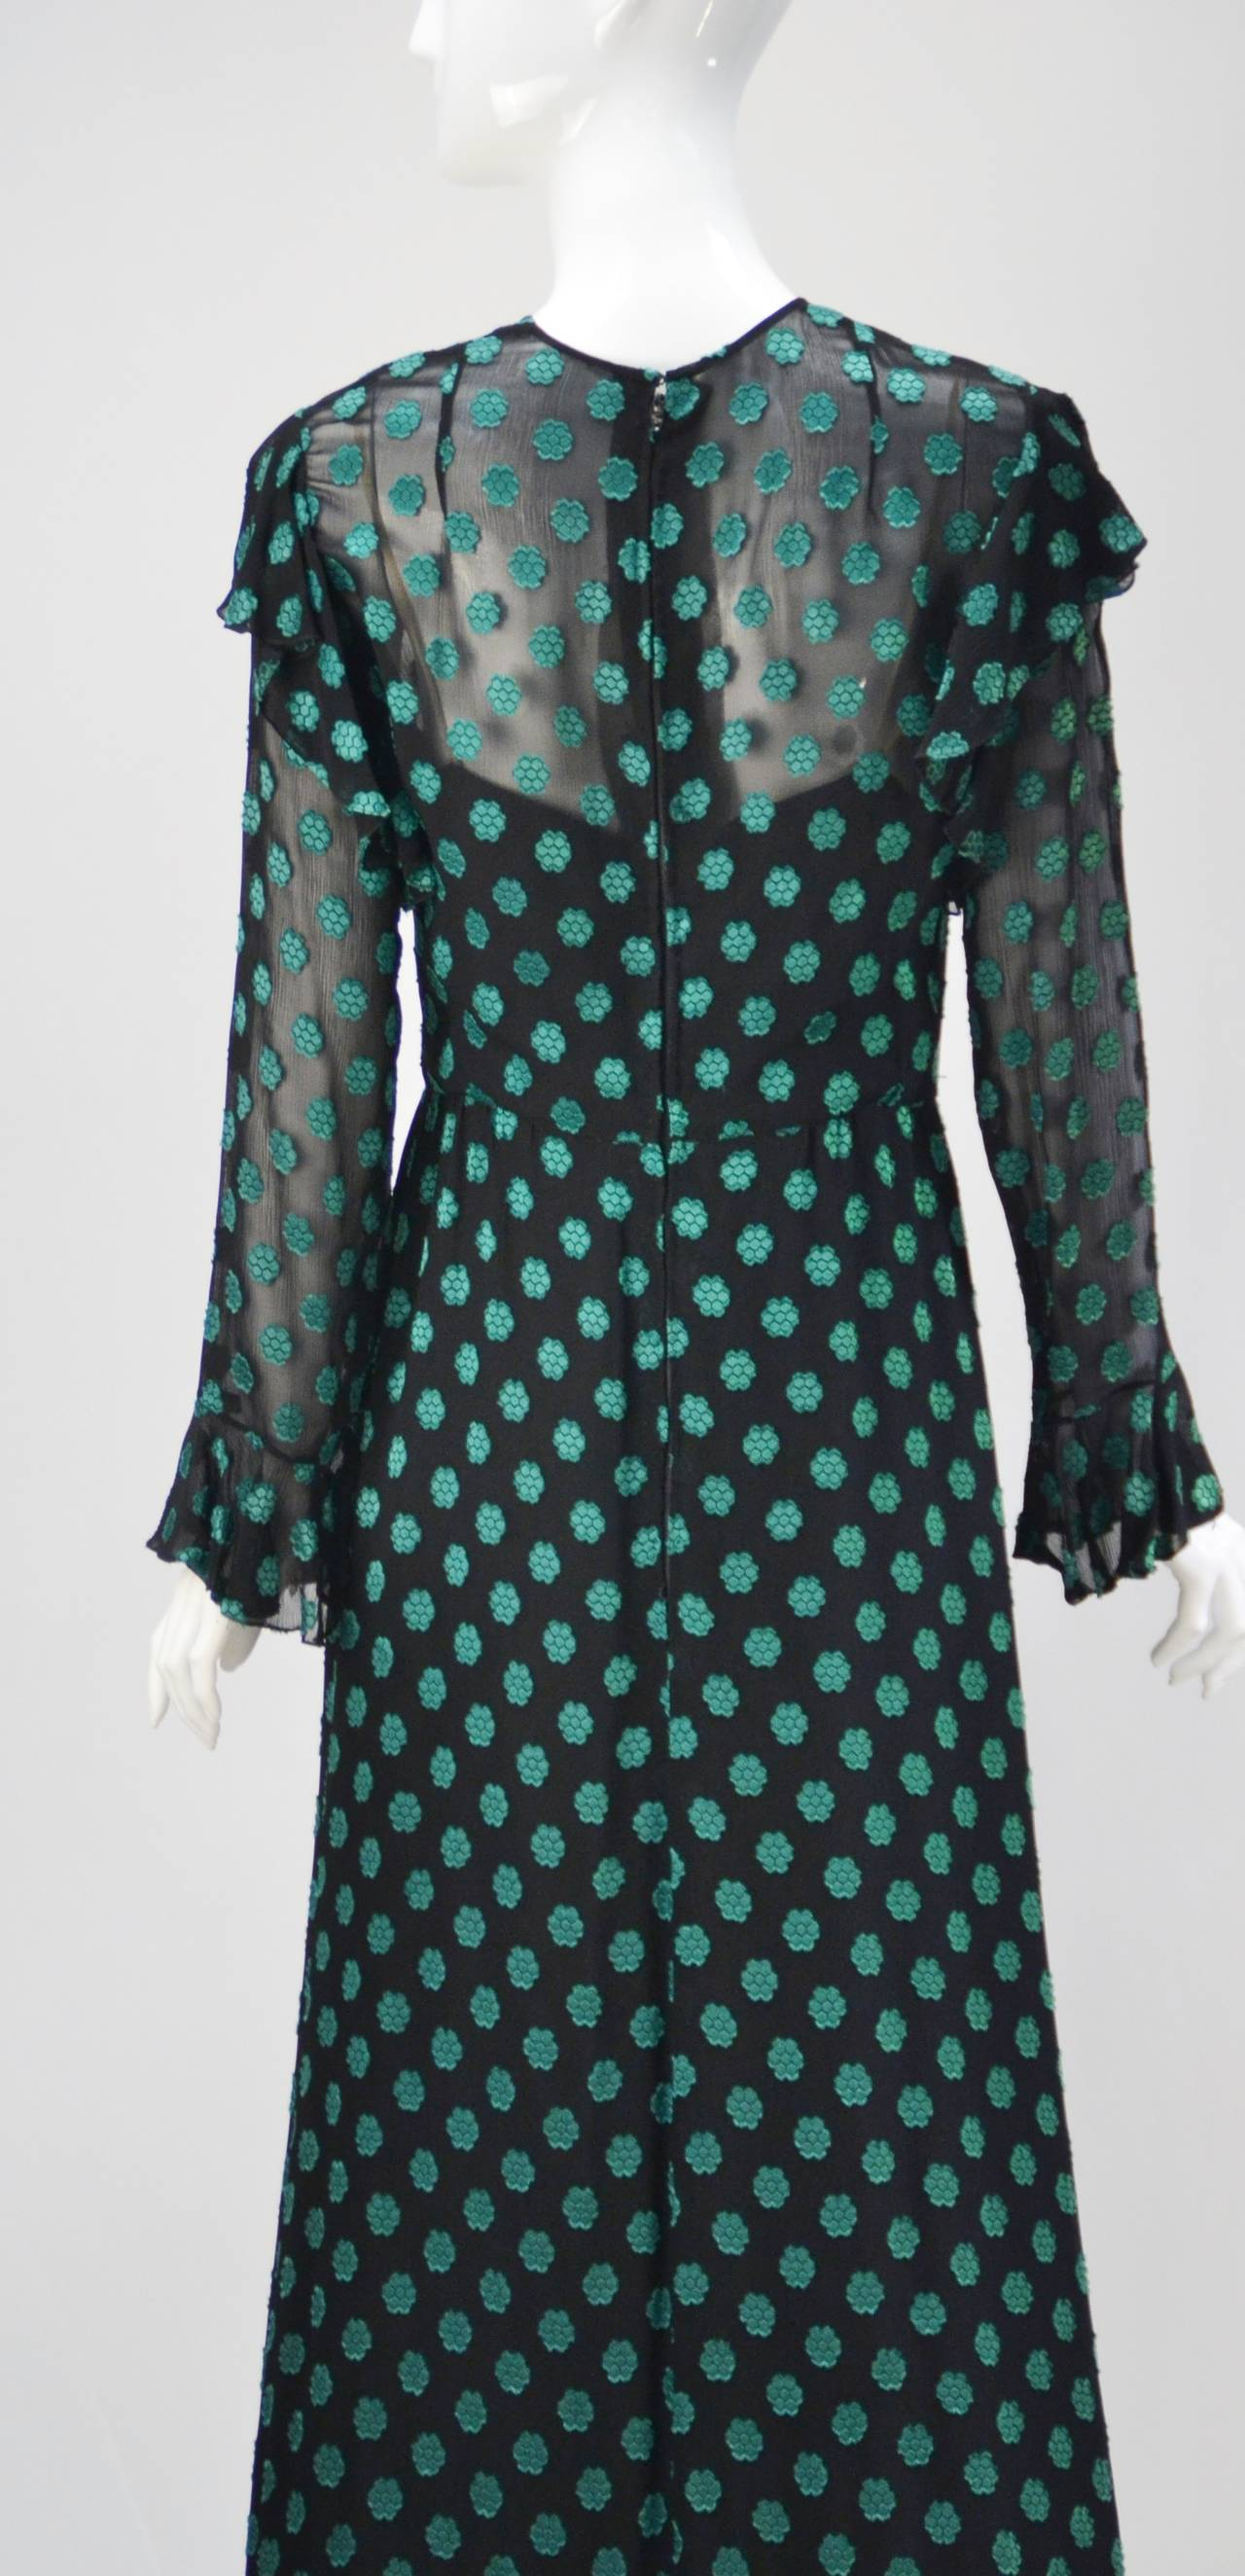 Women's or Men's 1980s Christian Dior Green Dress For Sale